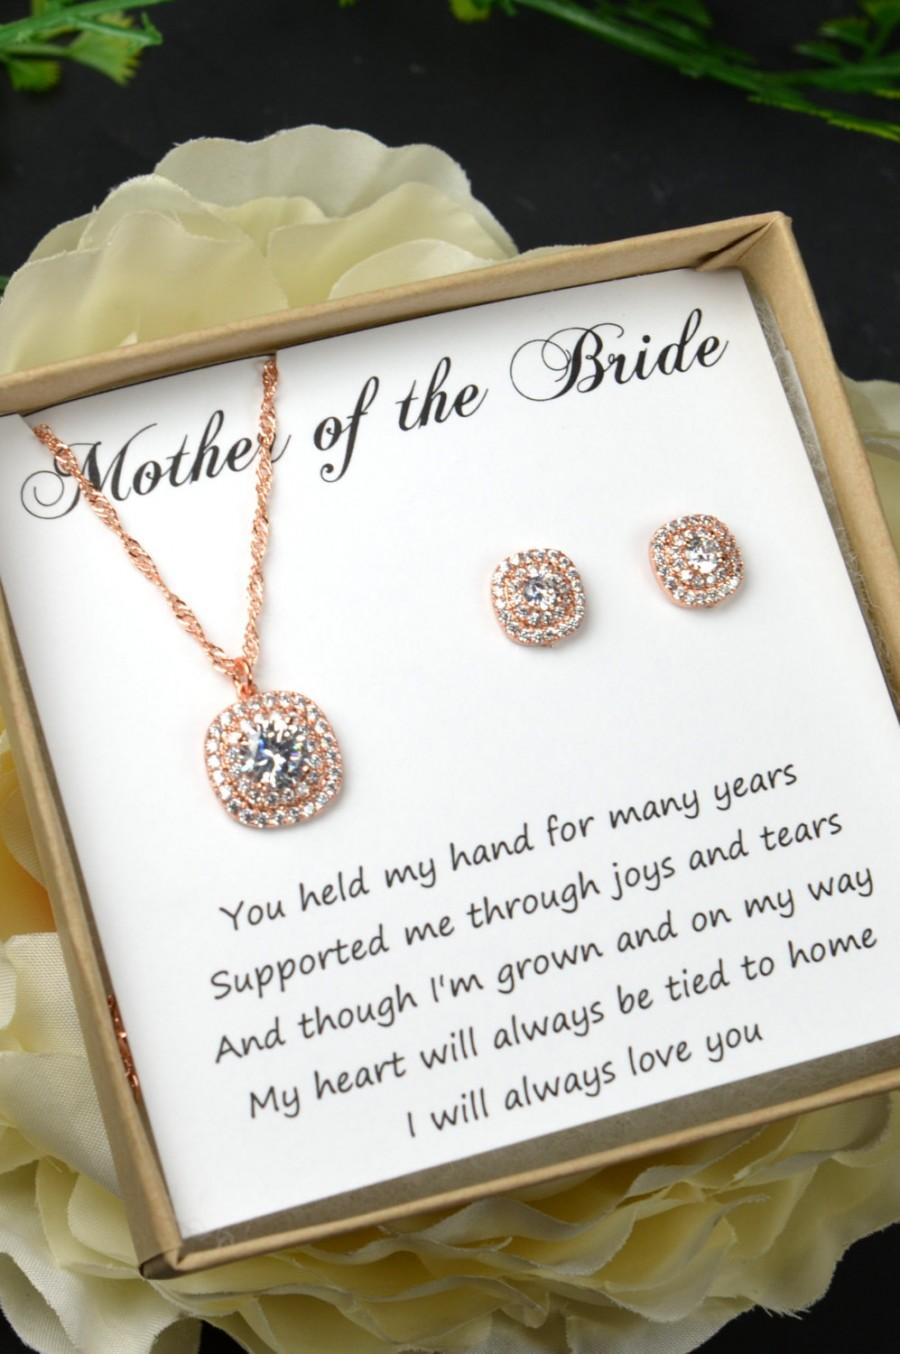 Mariage - Mother of the Bride Gift, Personalized Bridesmaids Gift,Mother of the Groom Gifts,Bridal Party Gift, Bridal Party Jewelry,Wedding bracelet,